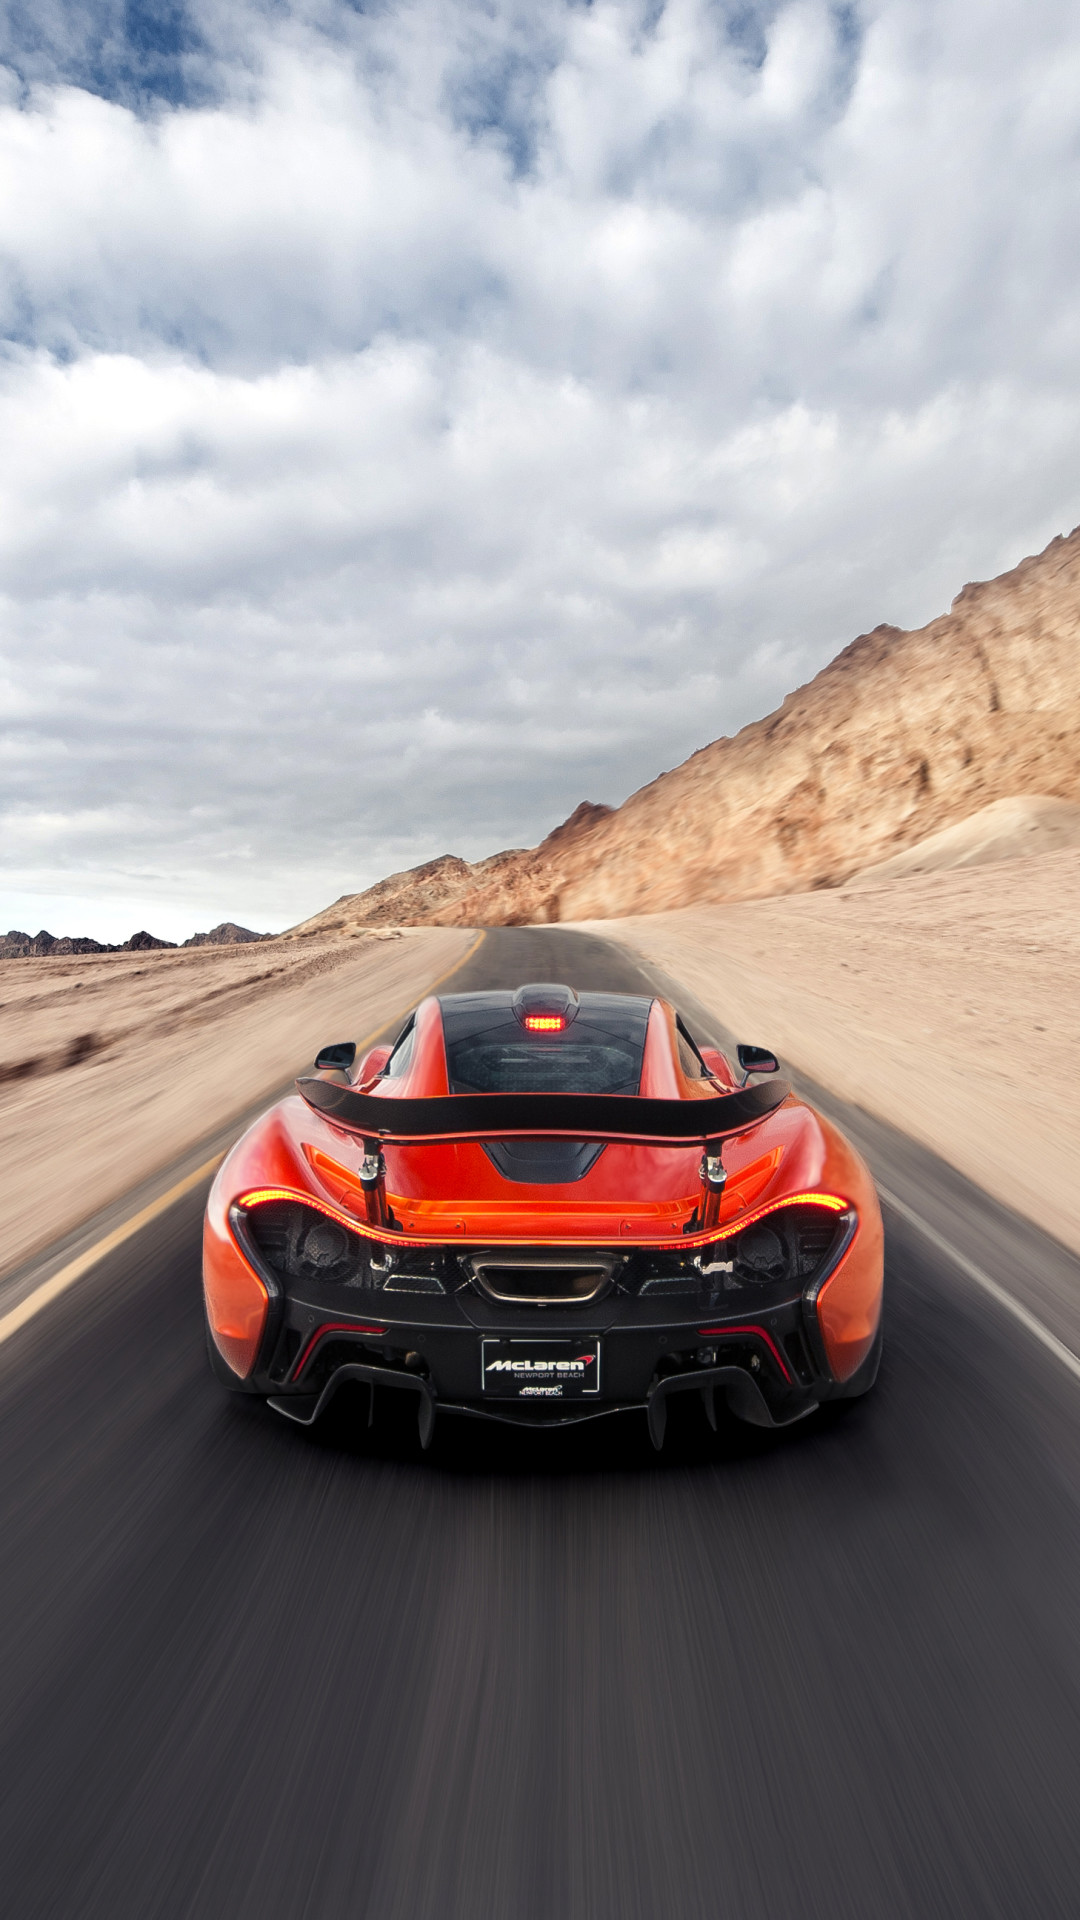 957515 cool mclaren automotive wallpapers 1080x1920 for iphone 6